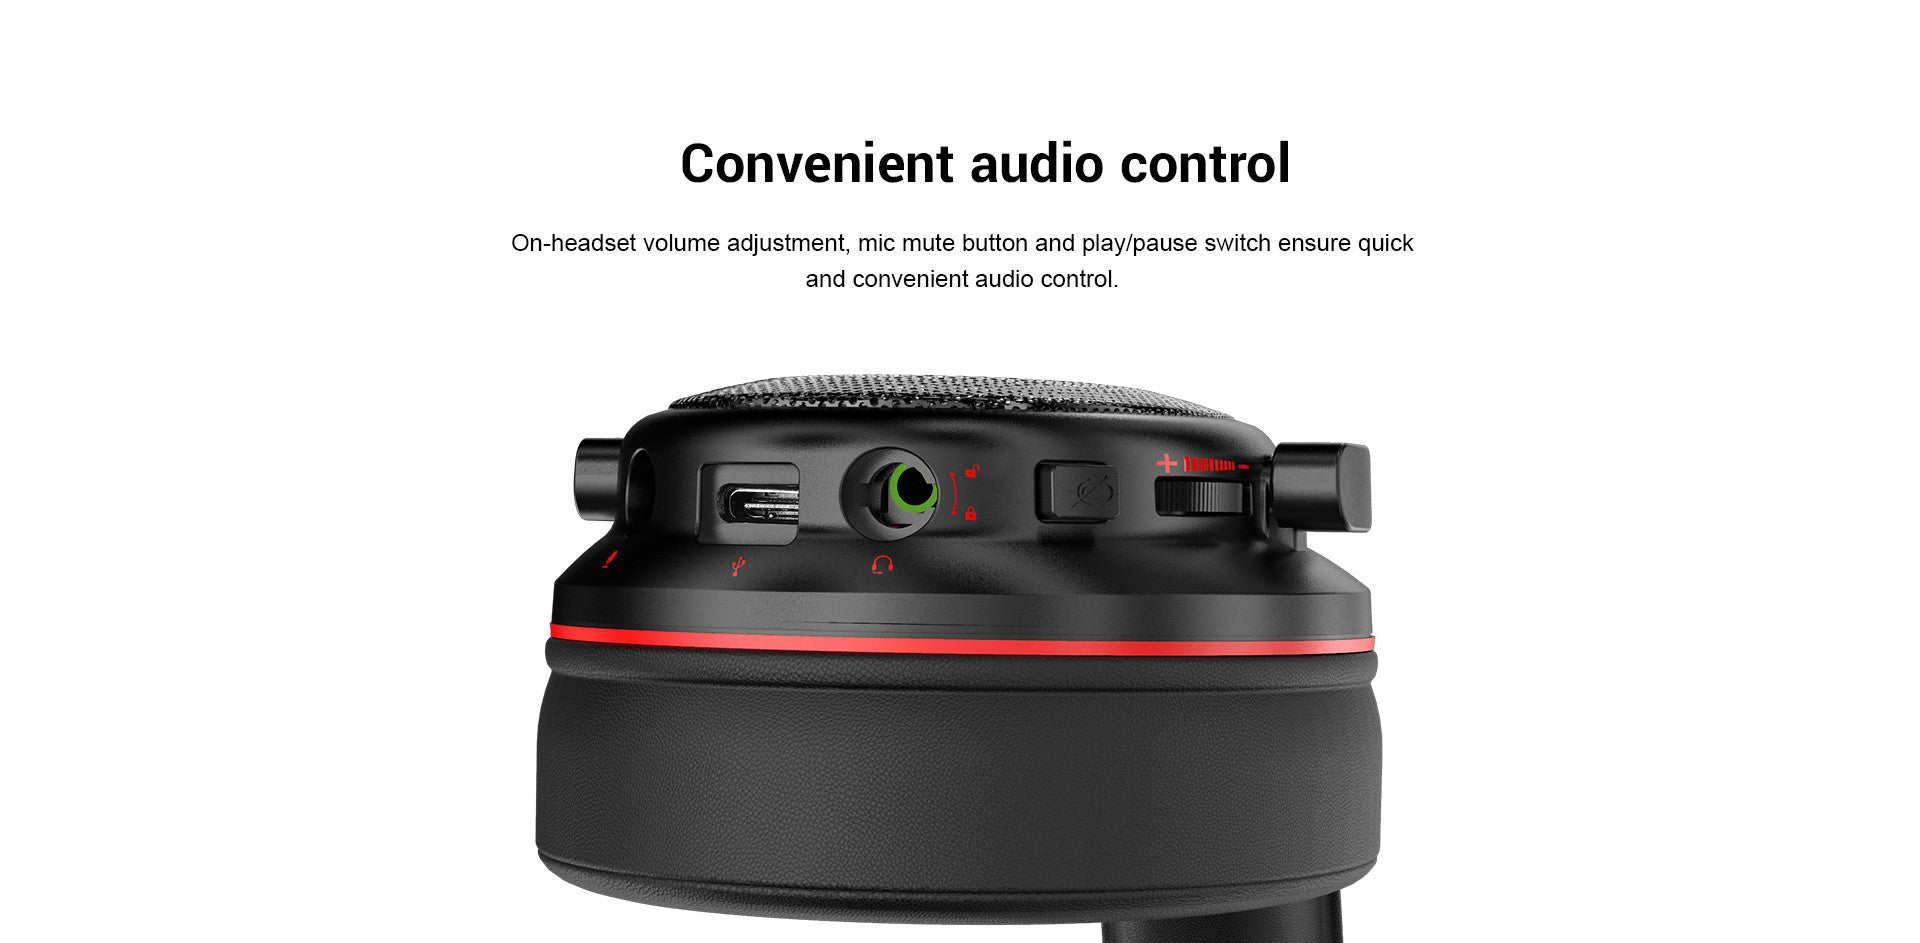 On-headset volume adjustment, mic mute button and play/pause switch ensure quick and convenient audio control.